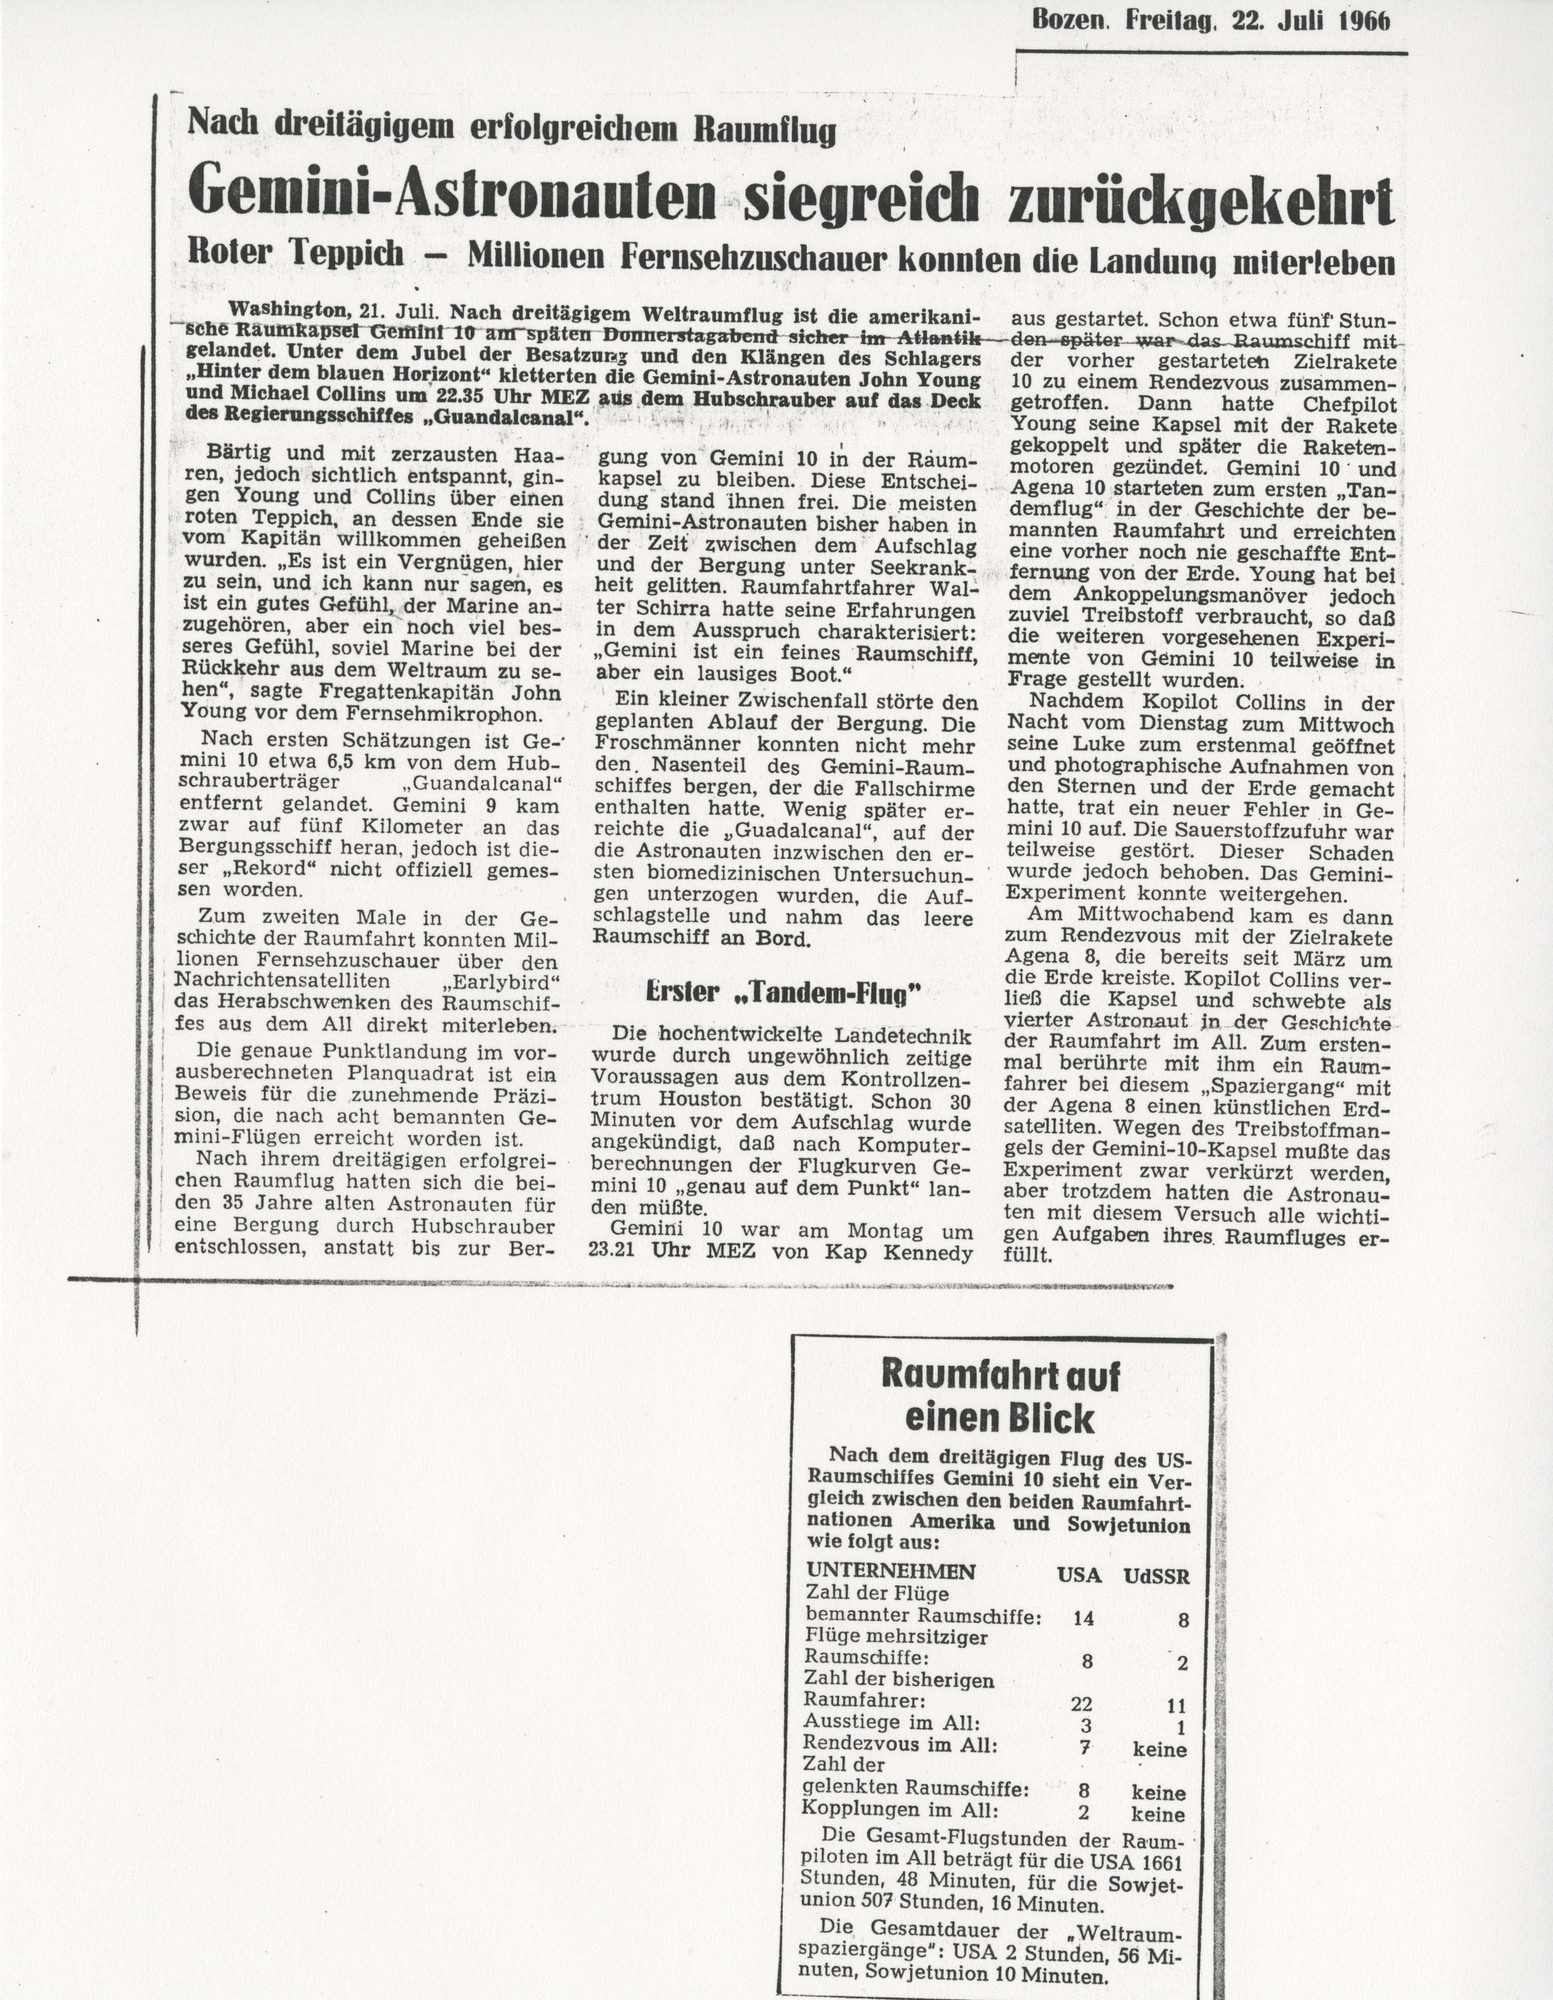 http://spec.lib.vt.edu/pickup/Omeka_upload/Ms1989-029_B07_F3_Clippings_1966_0722_02.jpg